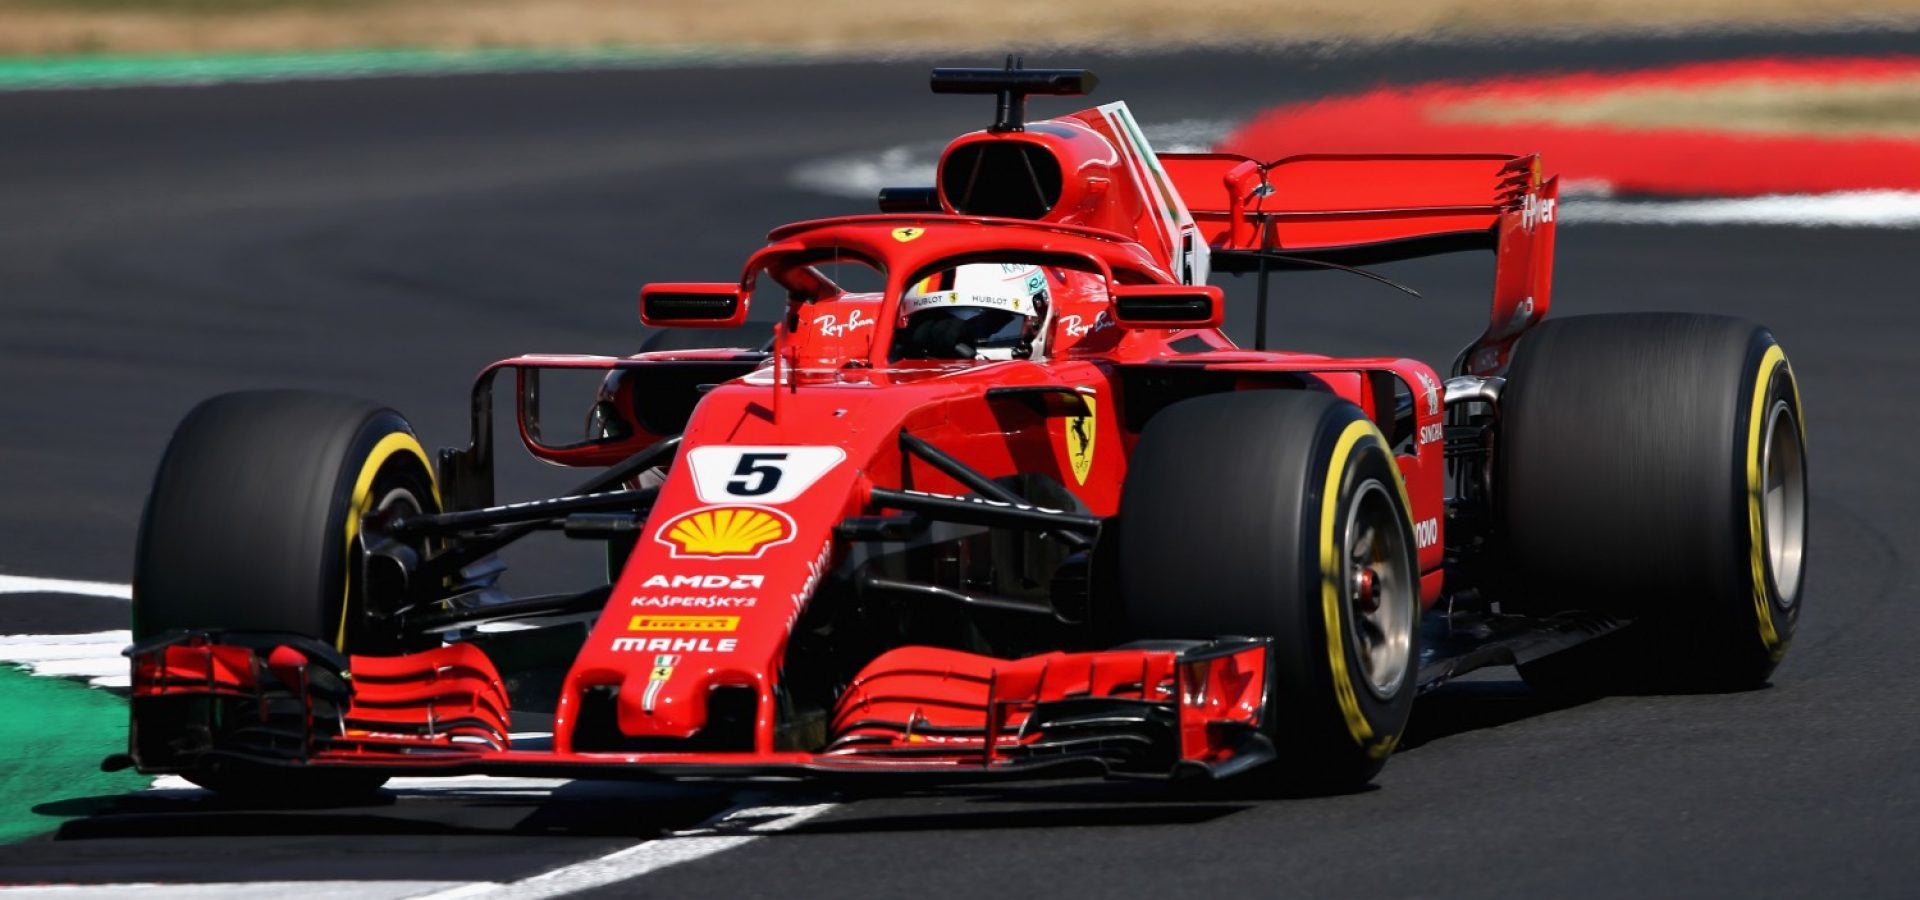 NORTHAMPTON, ENGLAND - JULY 07: Sebastian Vettel of Germany driving the (5) Scuderia Ferrari SF71H on track during qualifying for the Formula One Grand Prix of Great Britain at Silverstone on July 7, 2018 in Northampton, England.  (Photo by Charles Coates/Getty Images) *** Local Caption *** Sebastian Vettel